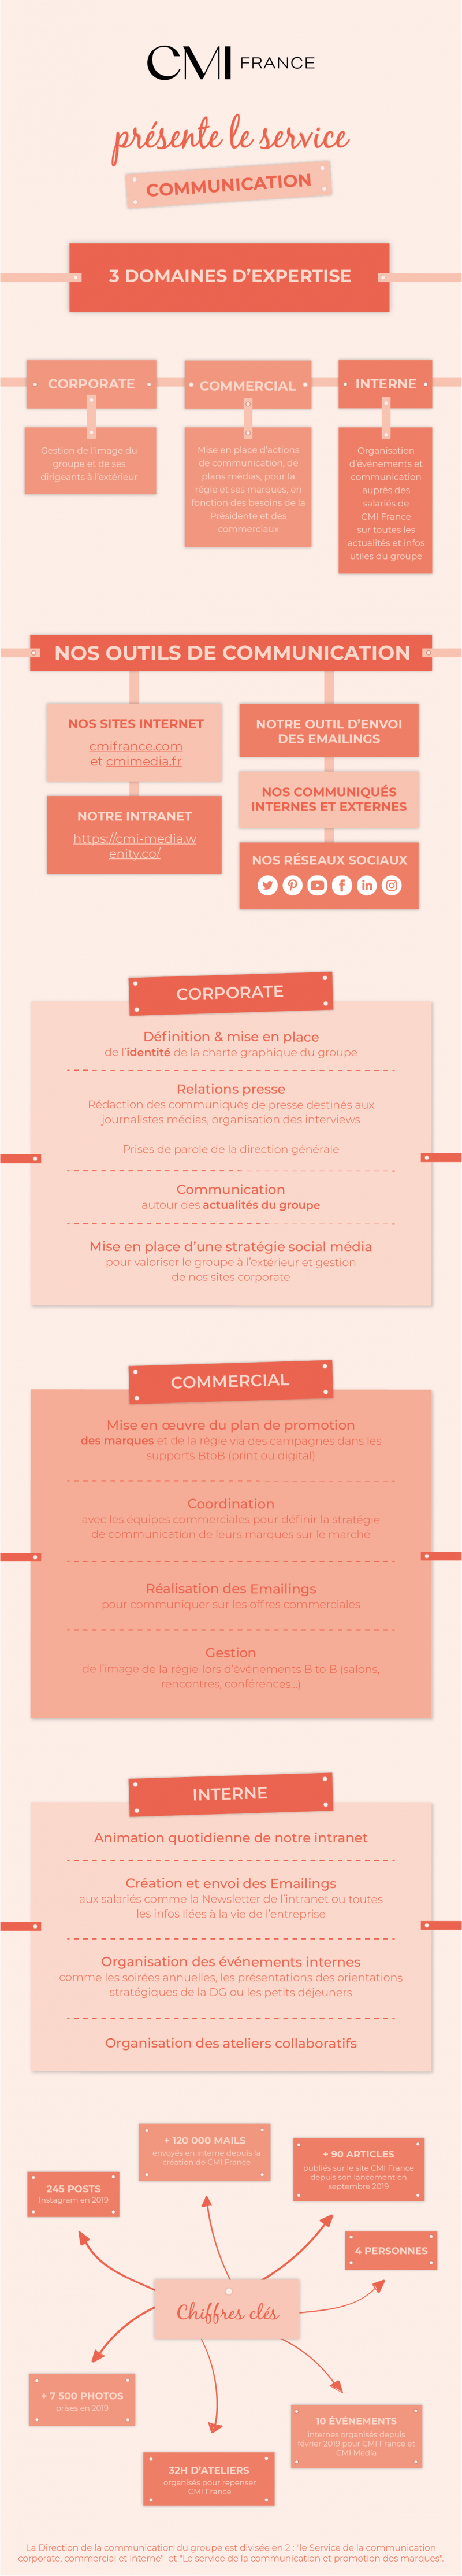 Infographie - Service Communication